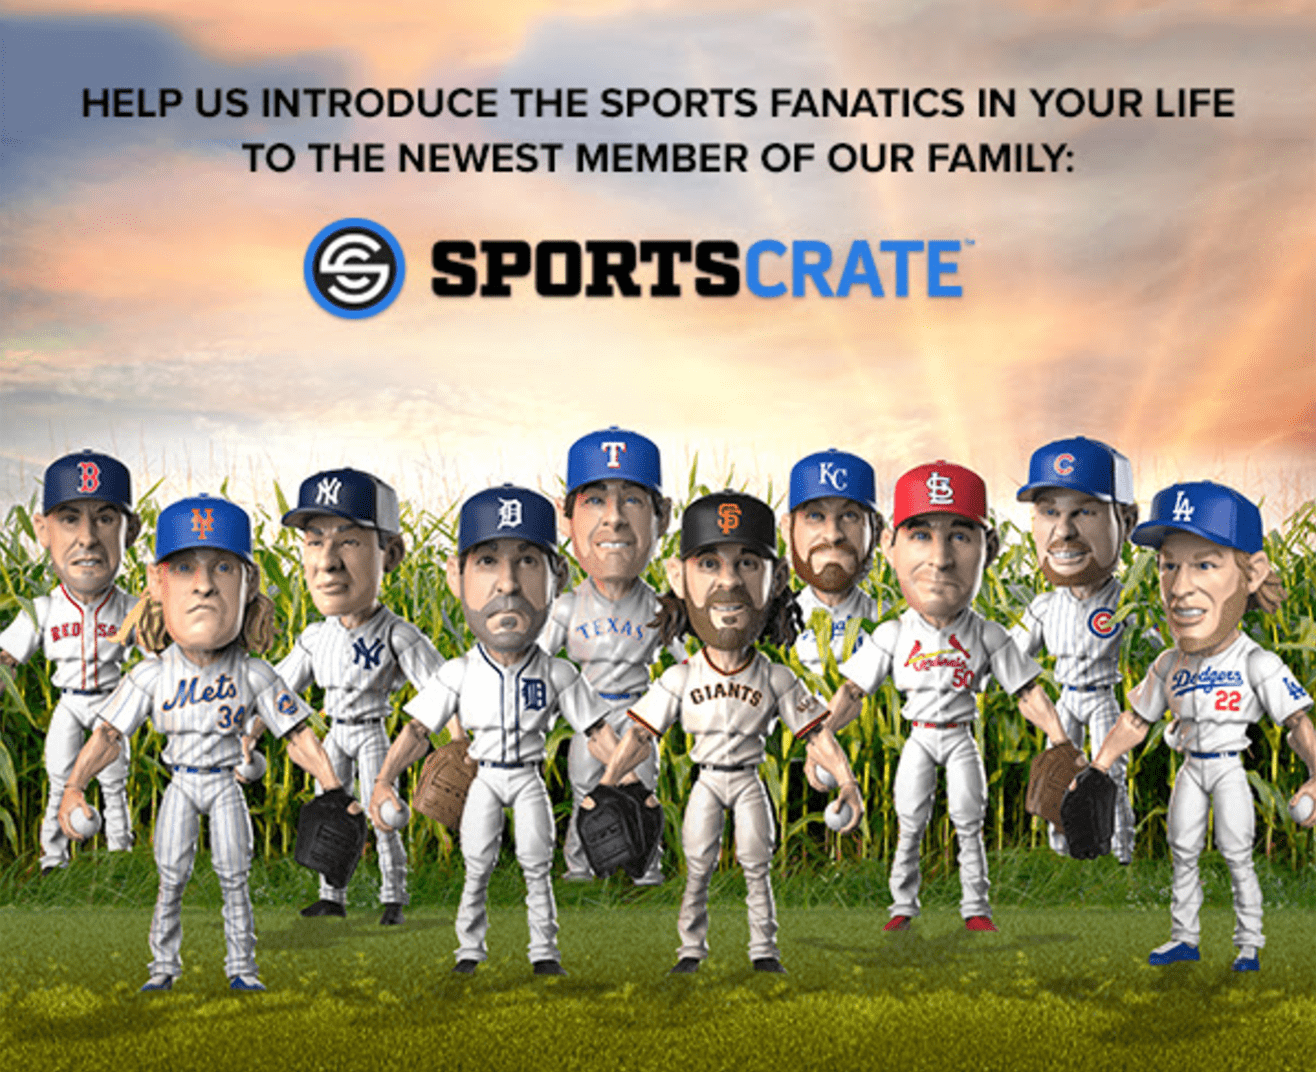 Loot Crate Sports Crate Coupon! $10 OFF Your Subscription!